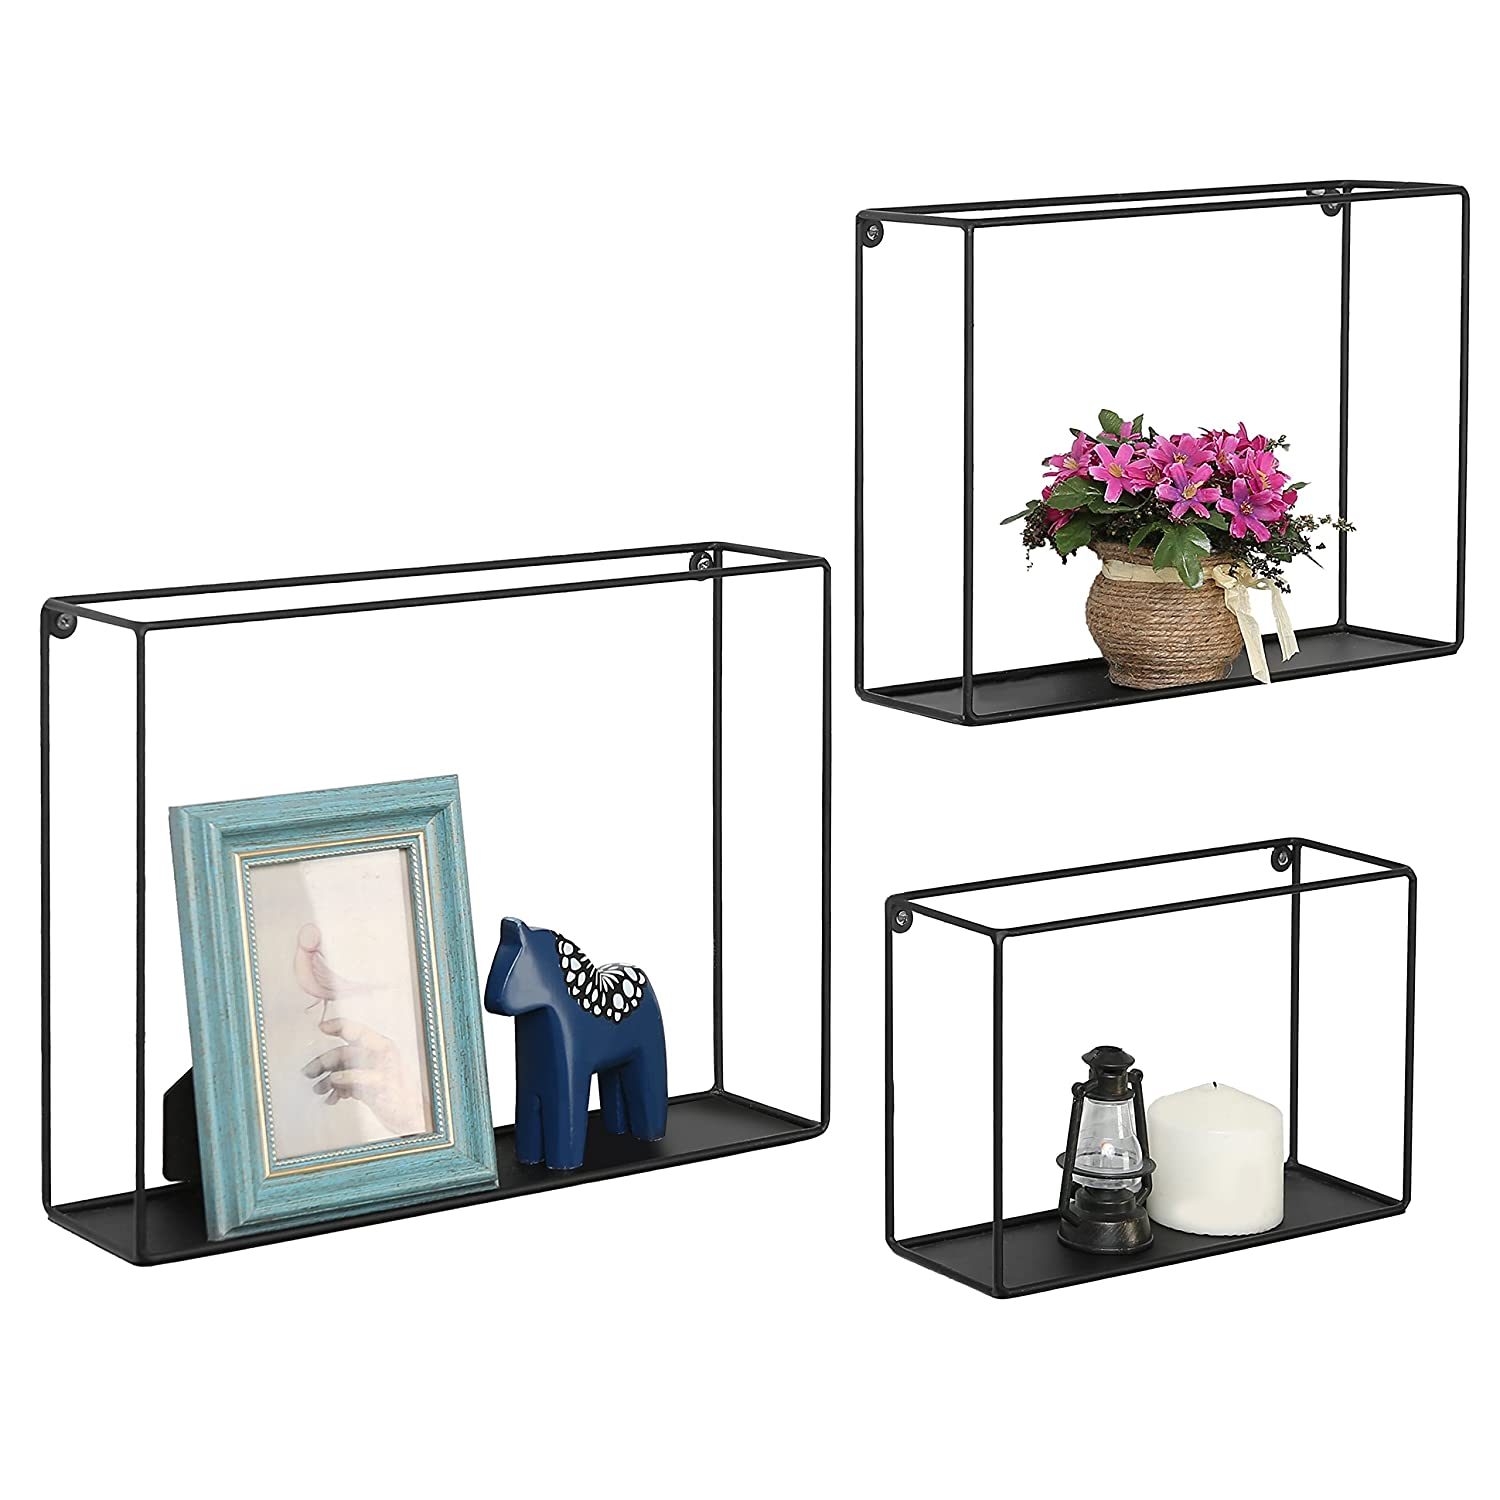 Modern Metal Wire Frame Shadow Boxes, Decorative Wire Cube Floating Shelves, Set of 3, Black MyGift